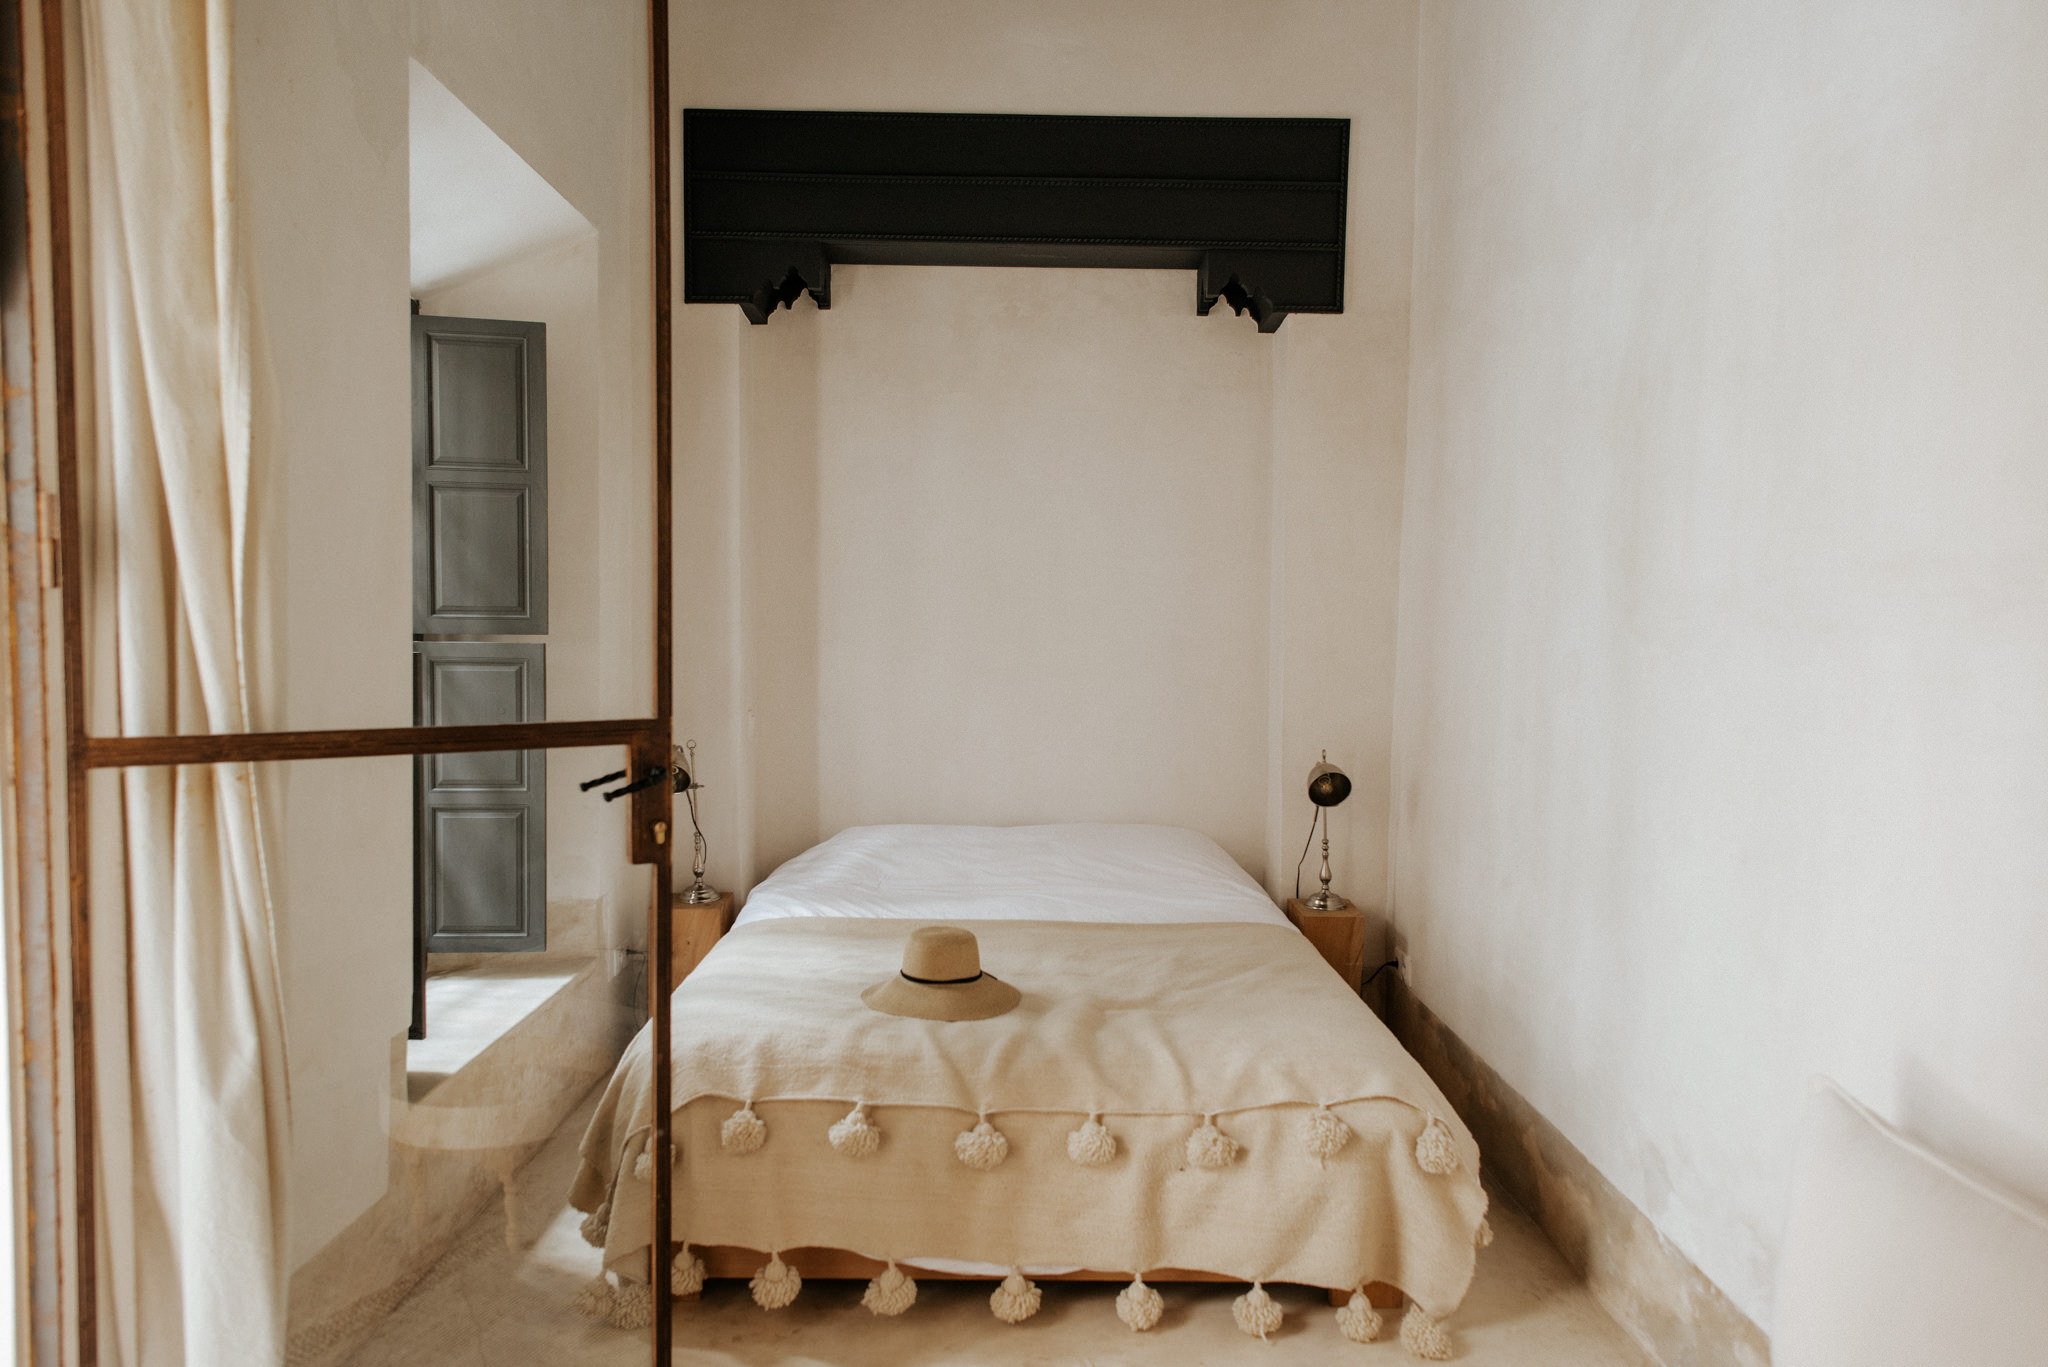 Clean minimalist bedroom at Riad 42 in Marrakech